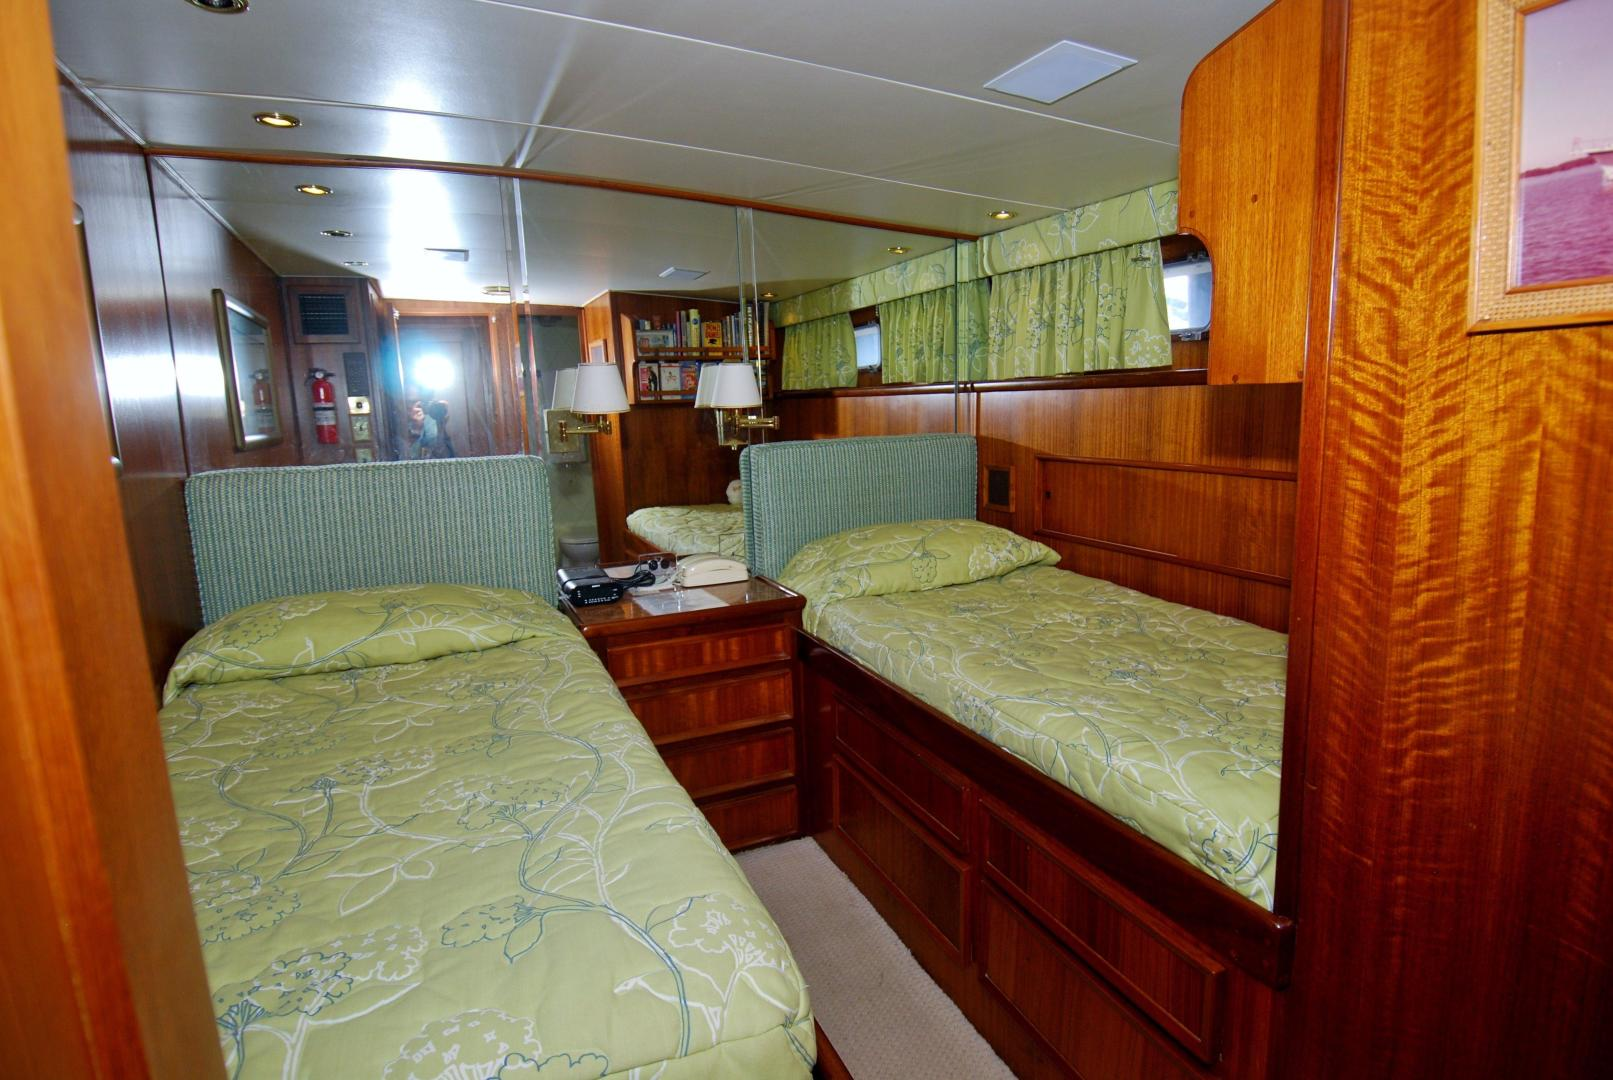 Hatteras-CPMY 1977-SENTRY Chesapeake-Virginia-United States-Guest Stateroom 2-452932 | Thumbnail